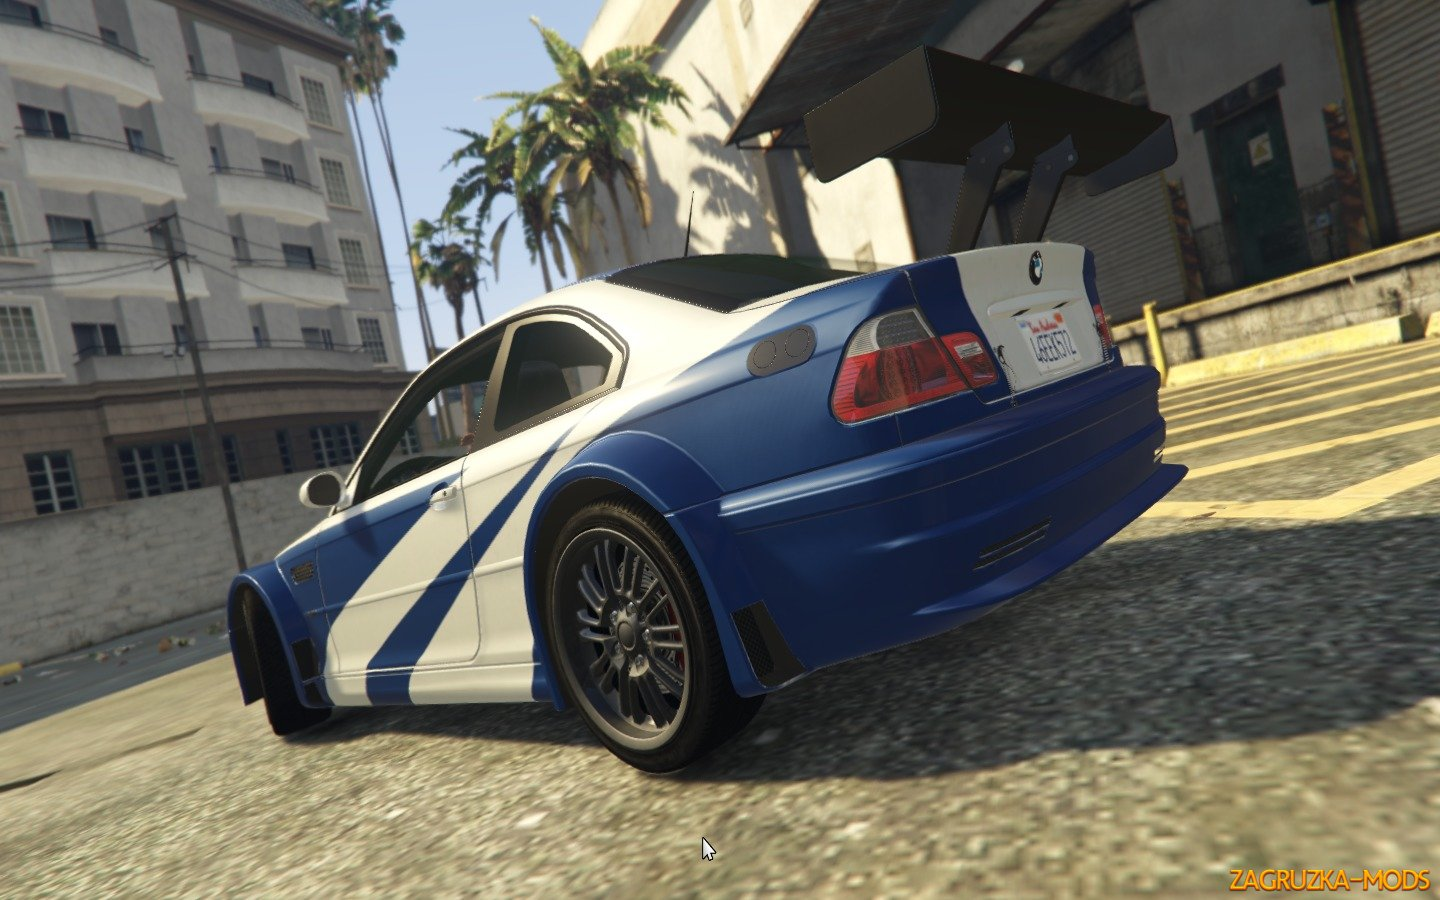 Bmw M3 Gtr E46 Need For Speed Most Wanted V1 3 For Gta 5 Simulator Mods Ets 2 Ats Fs17 Csgo Gta 5 Train